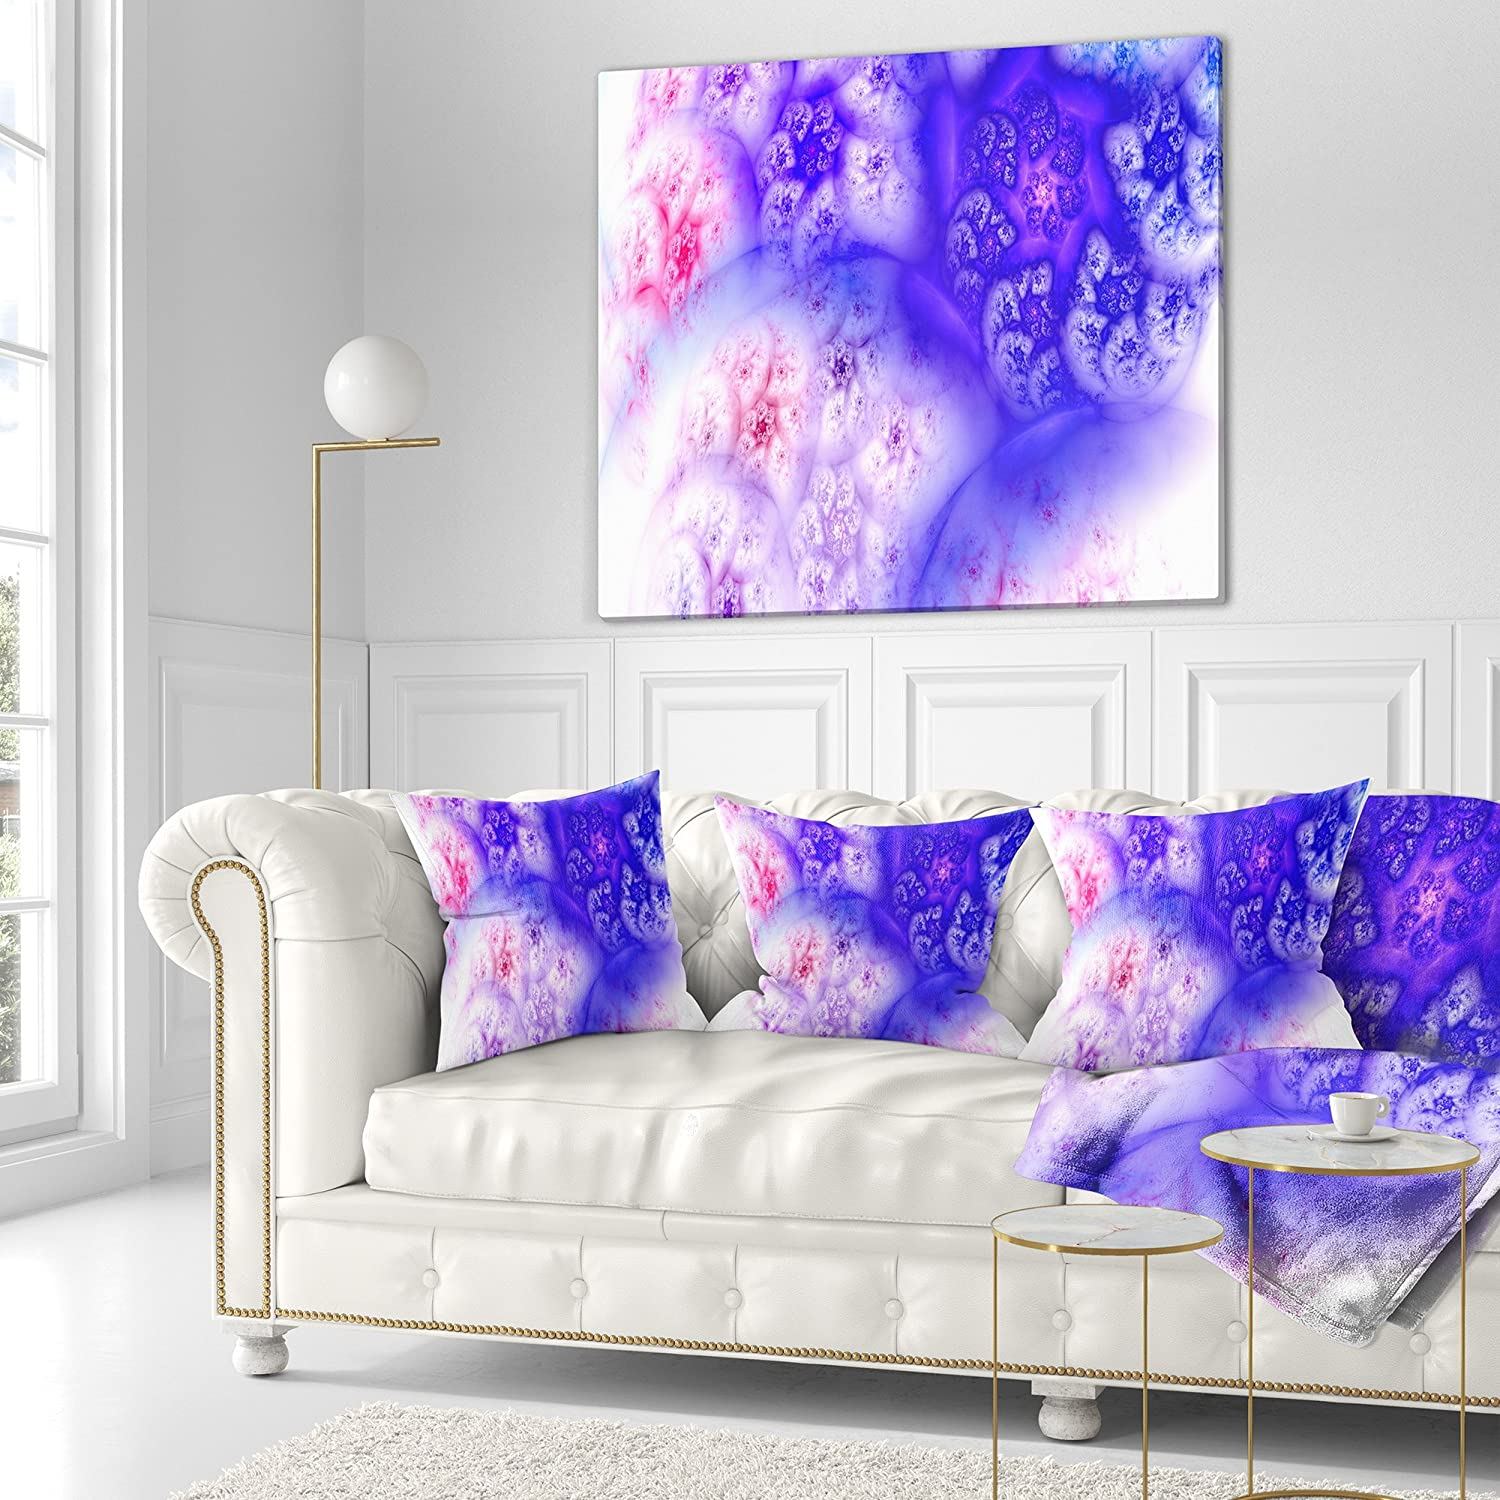 Sofa Throw Pillow 18 in x 18 in in Designart CU16081-18-18 Light Blue Magic Stormy Sky Abstract Cushion Cover for Living Room